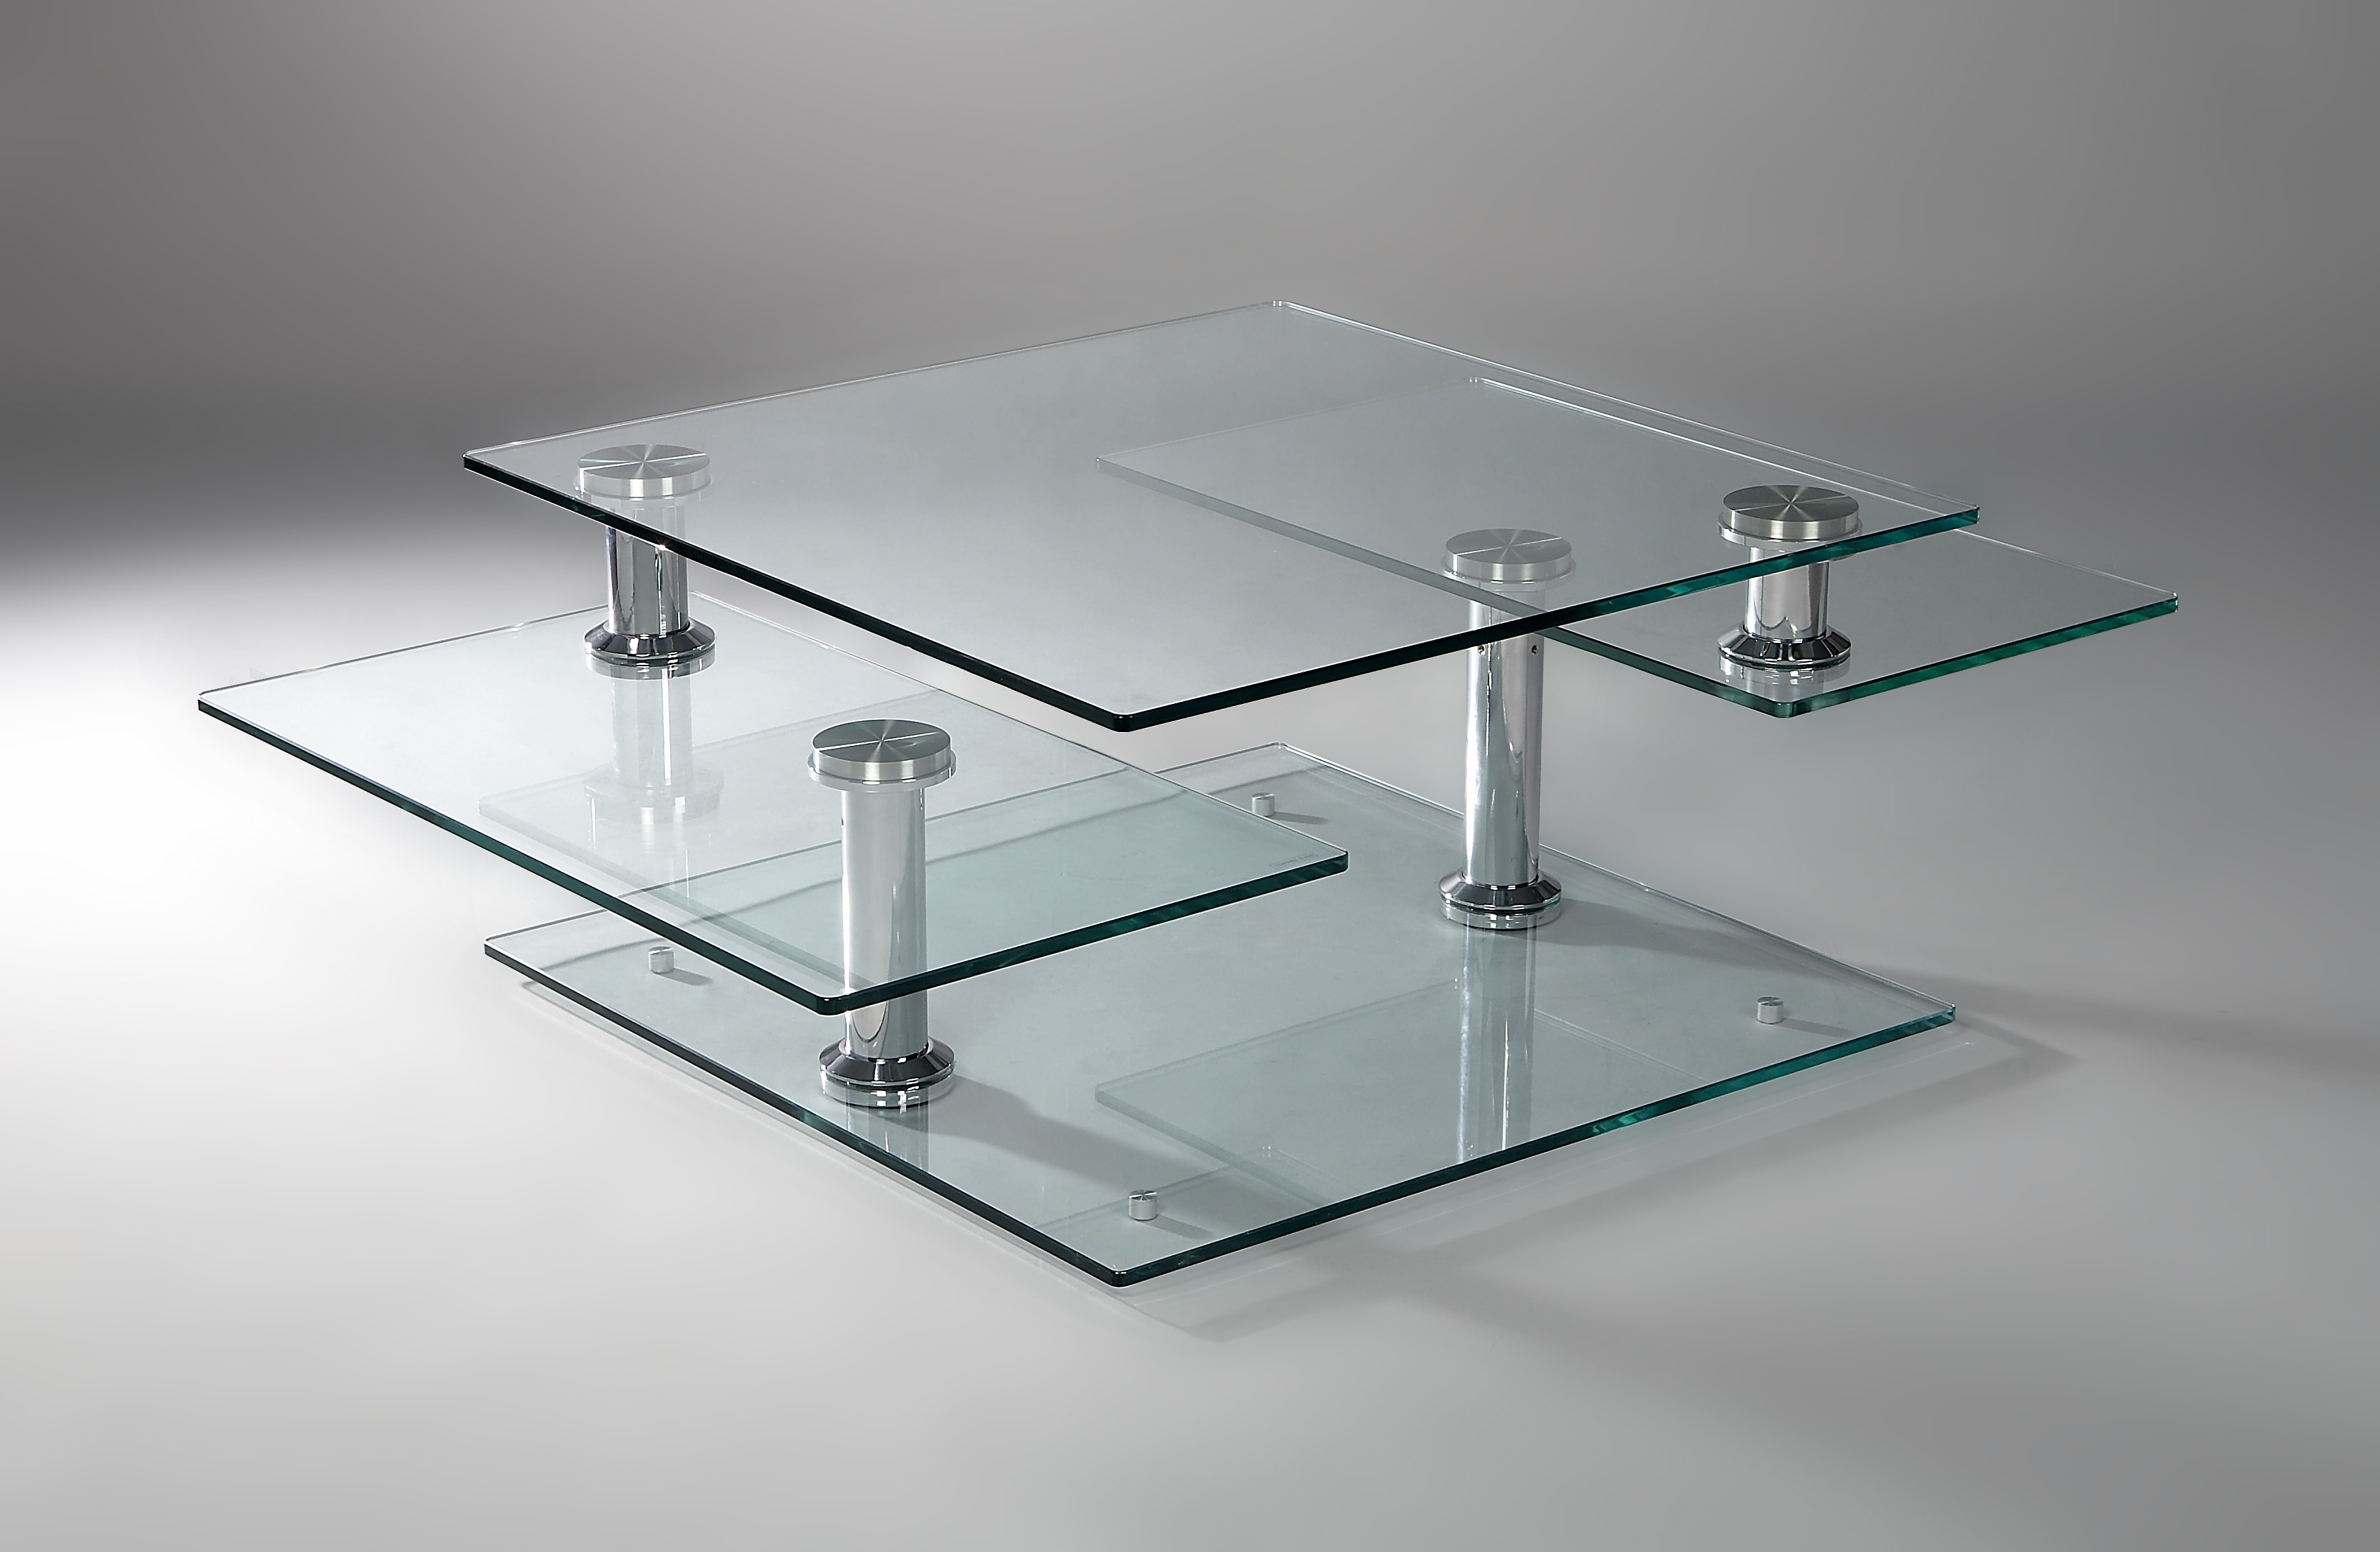 Table basse verre modulable design chateau d 39 ax marseille 13 - Table basse design en verre trempe ...